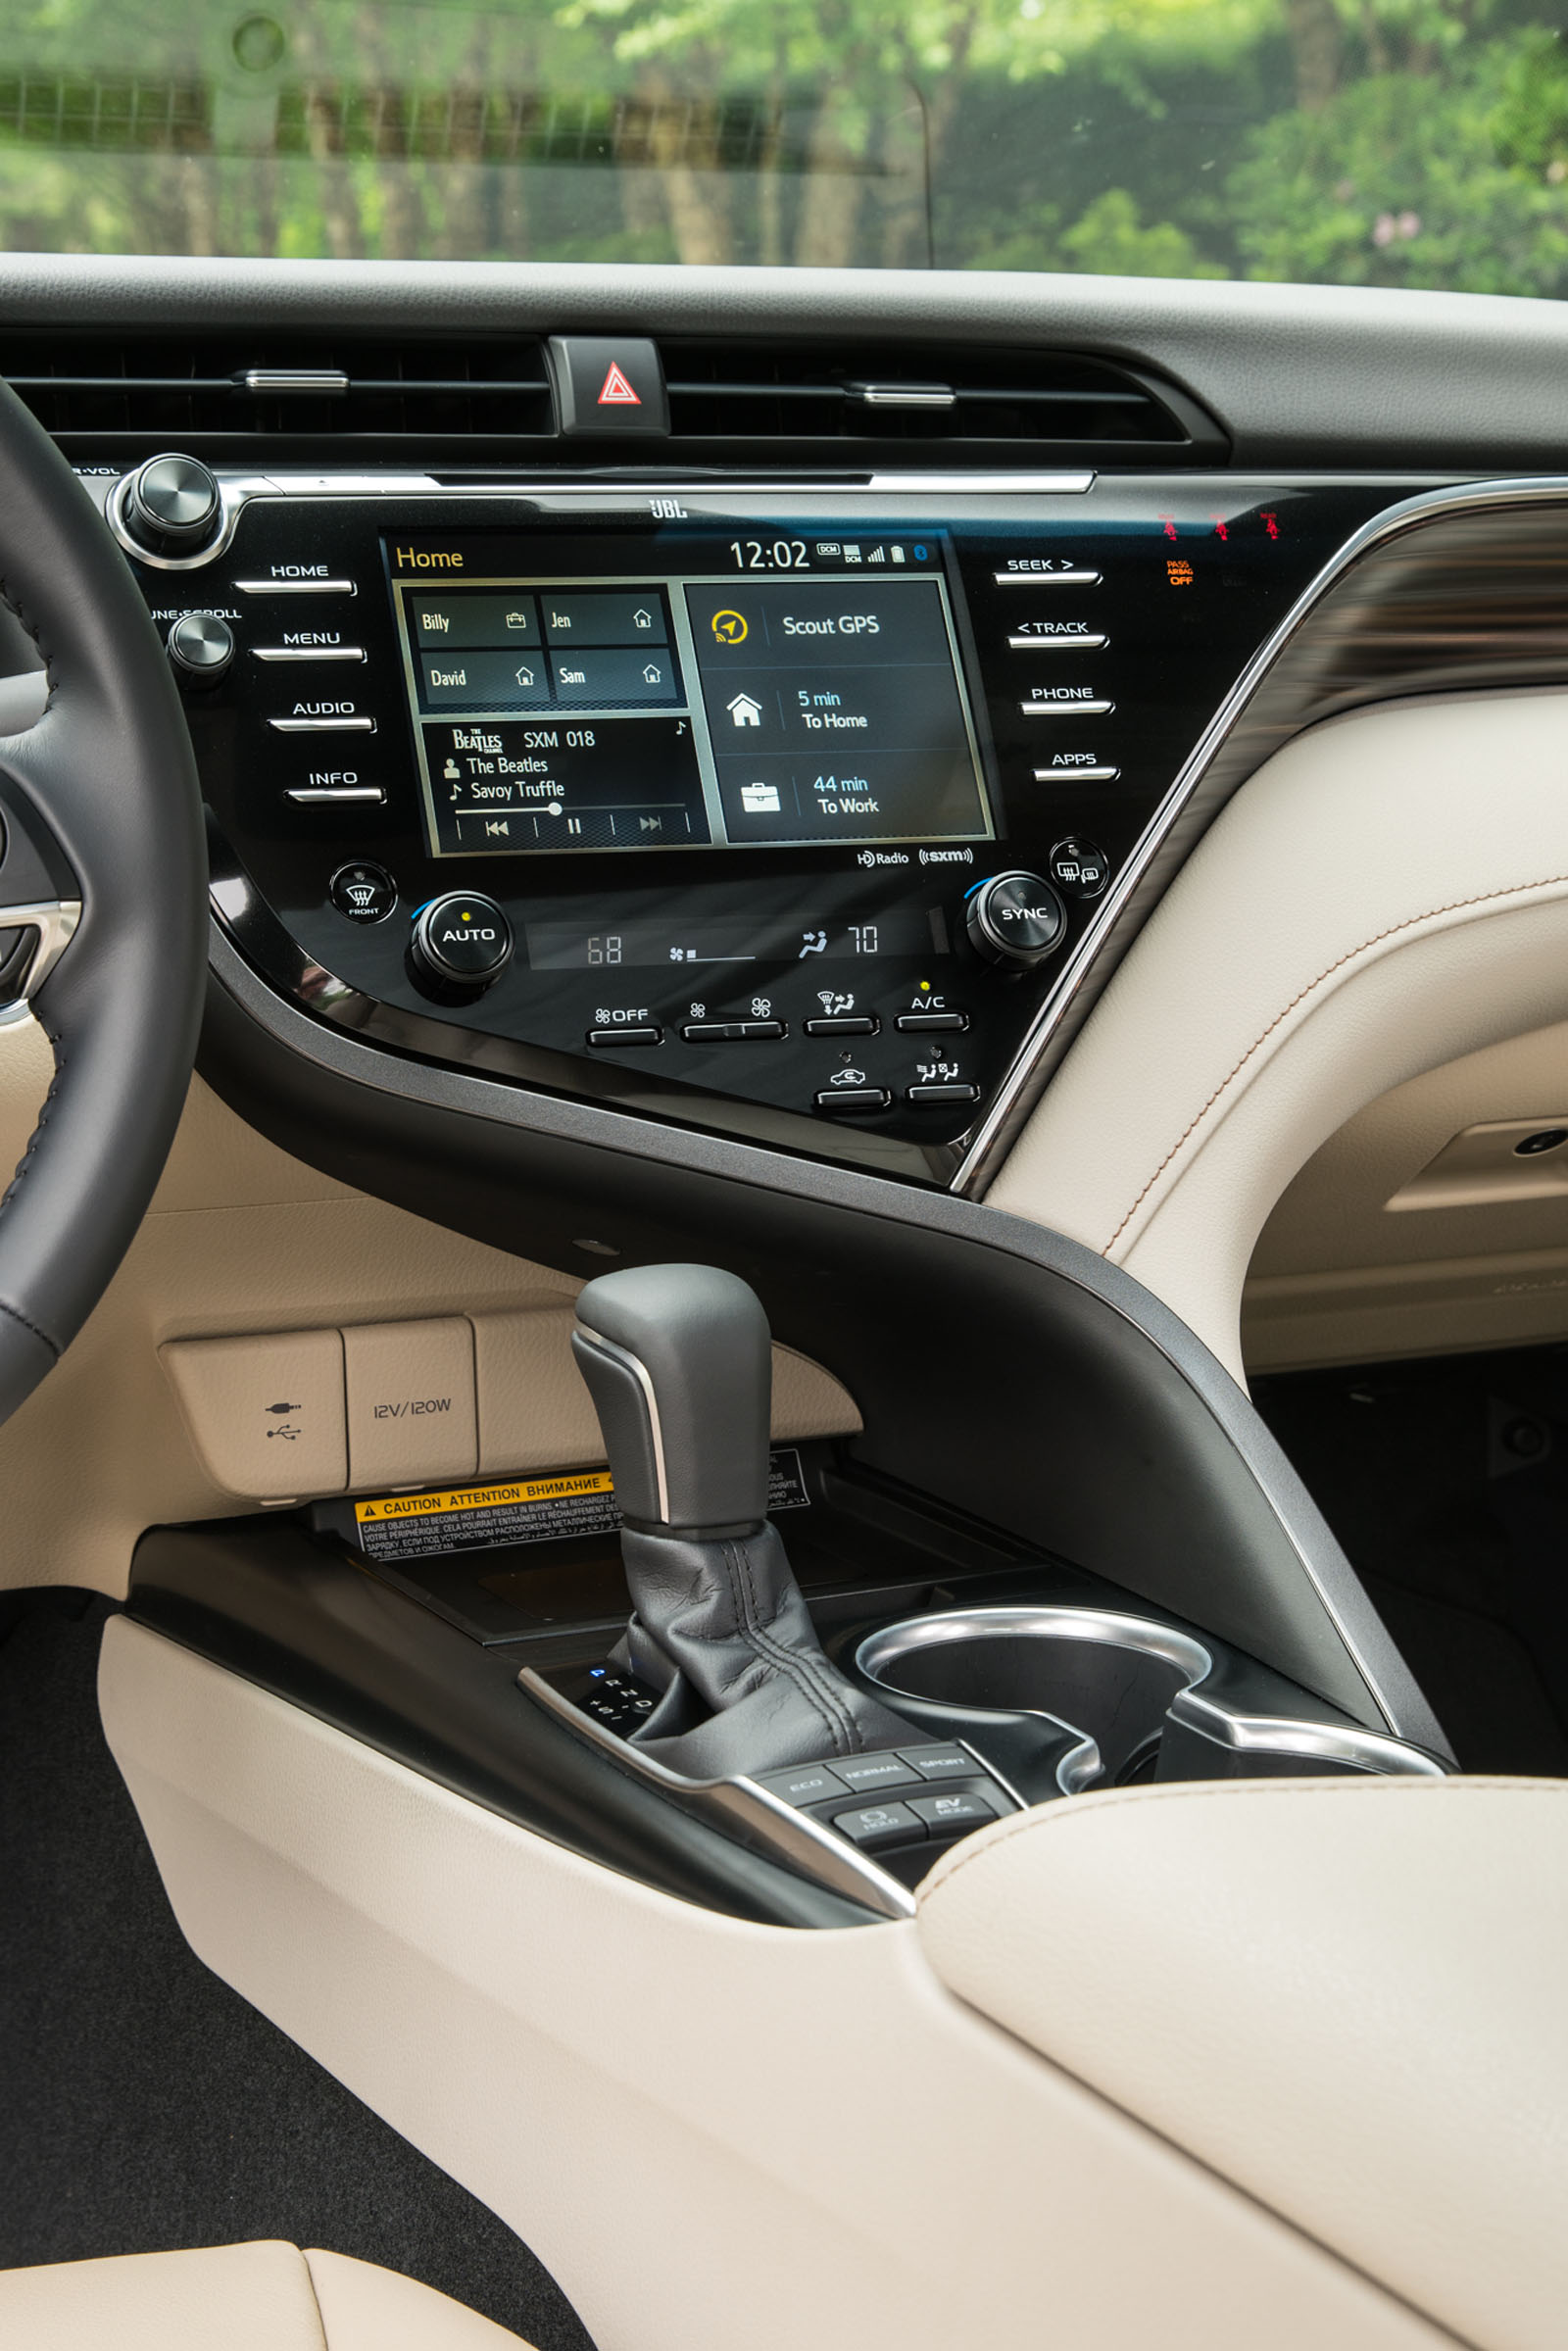 2018 Toyota Camry Hybrid Review 08